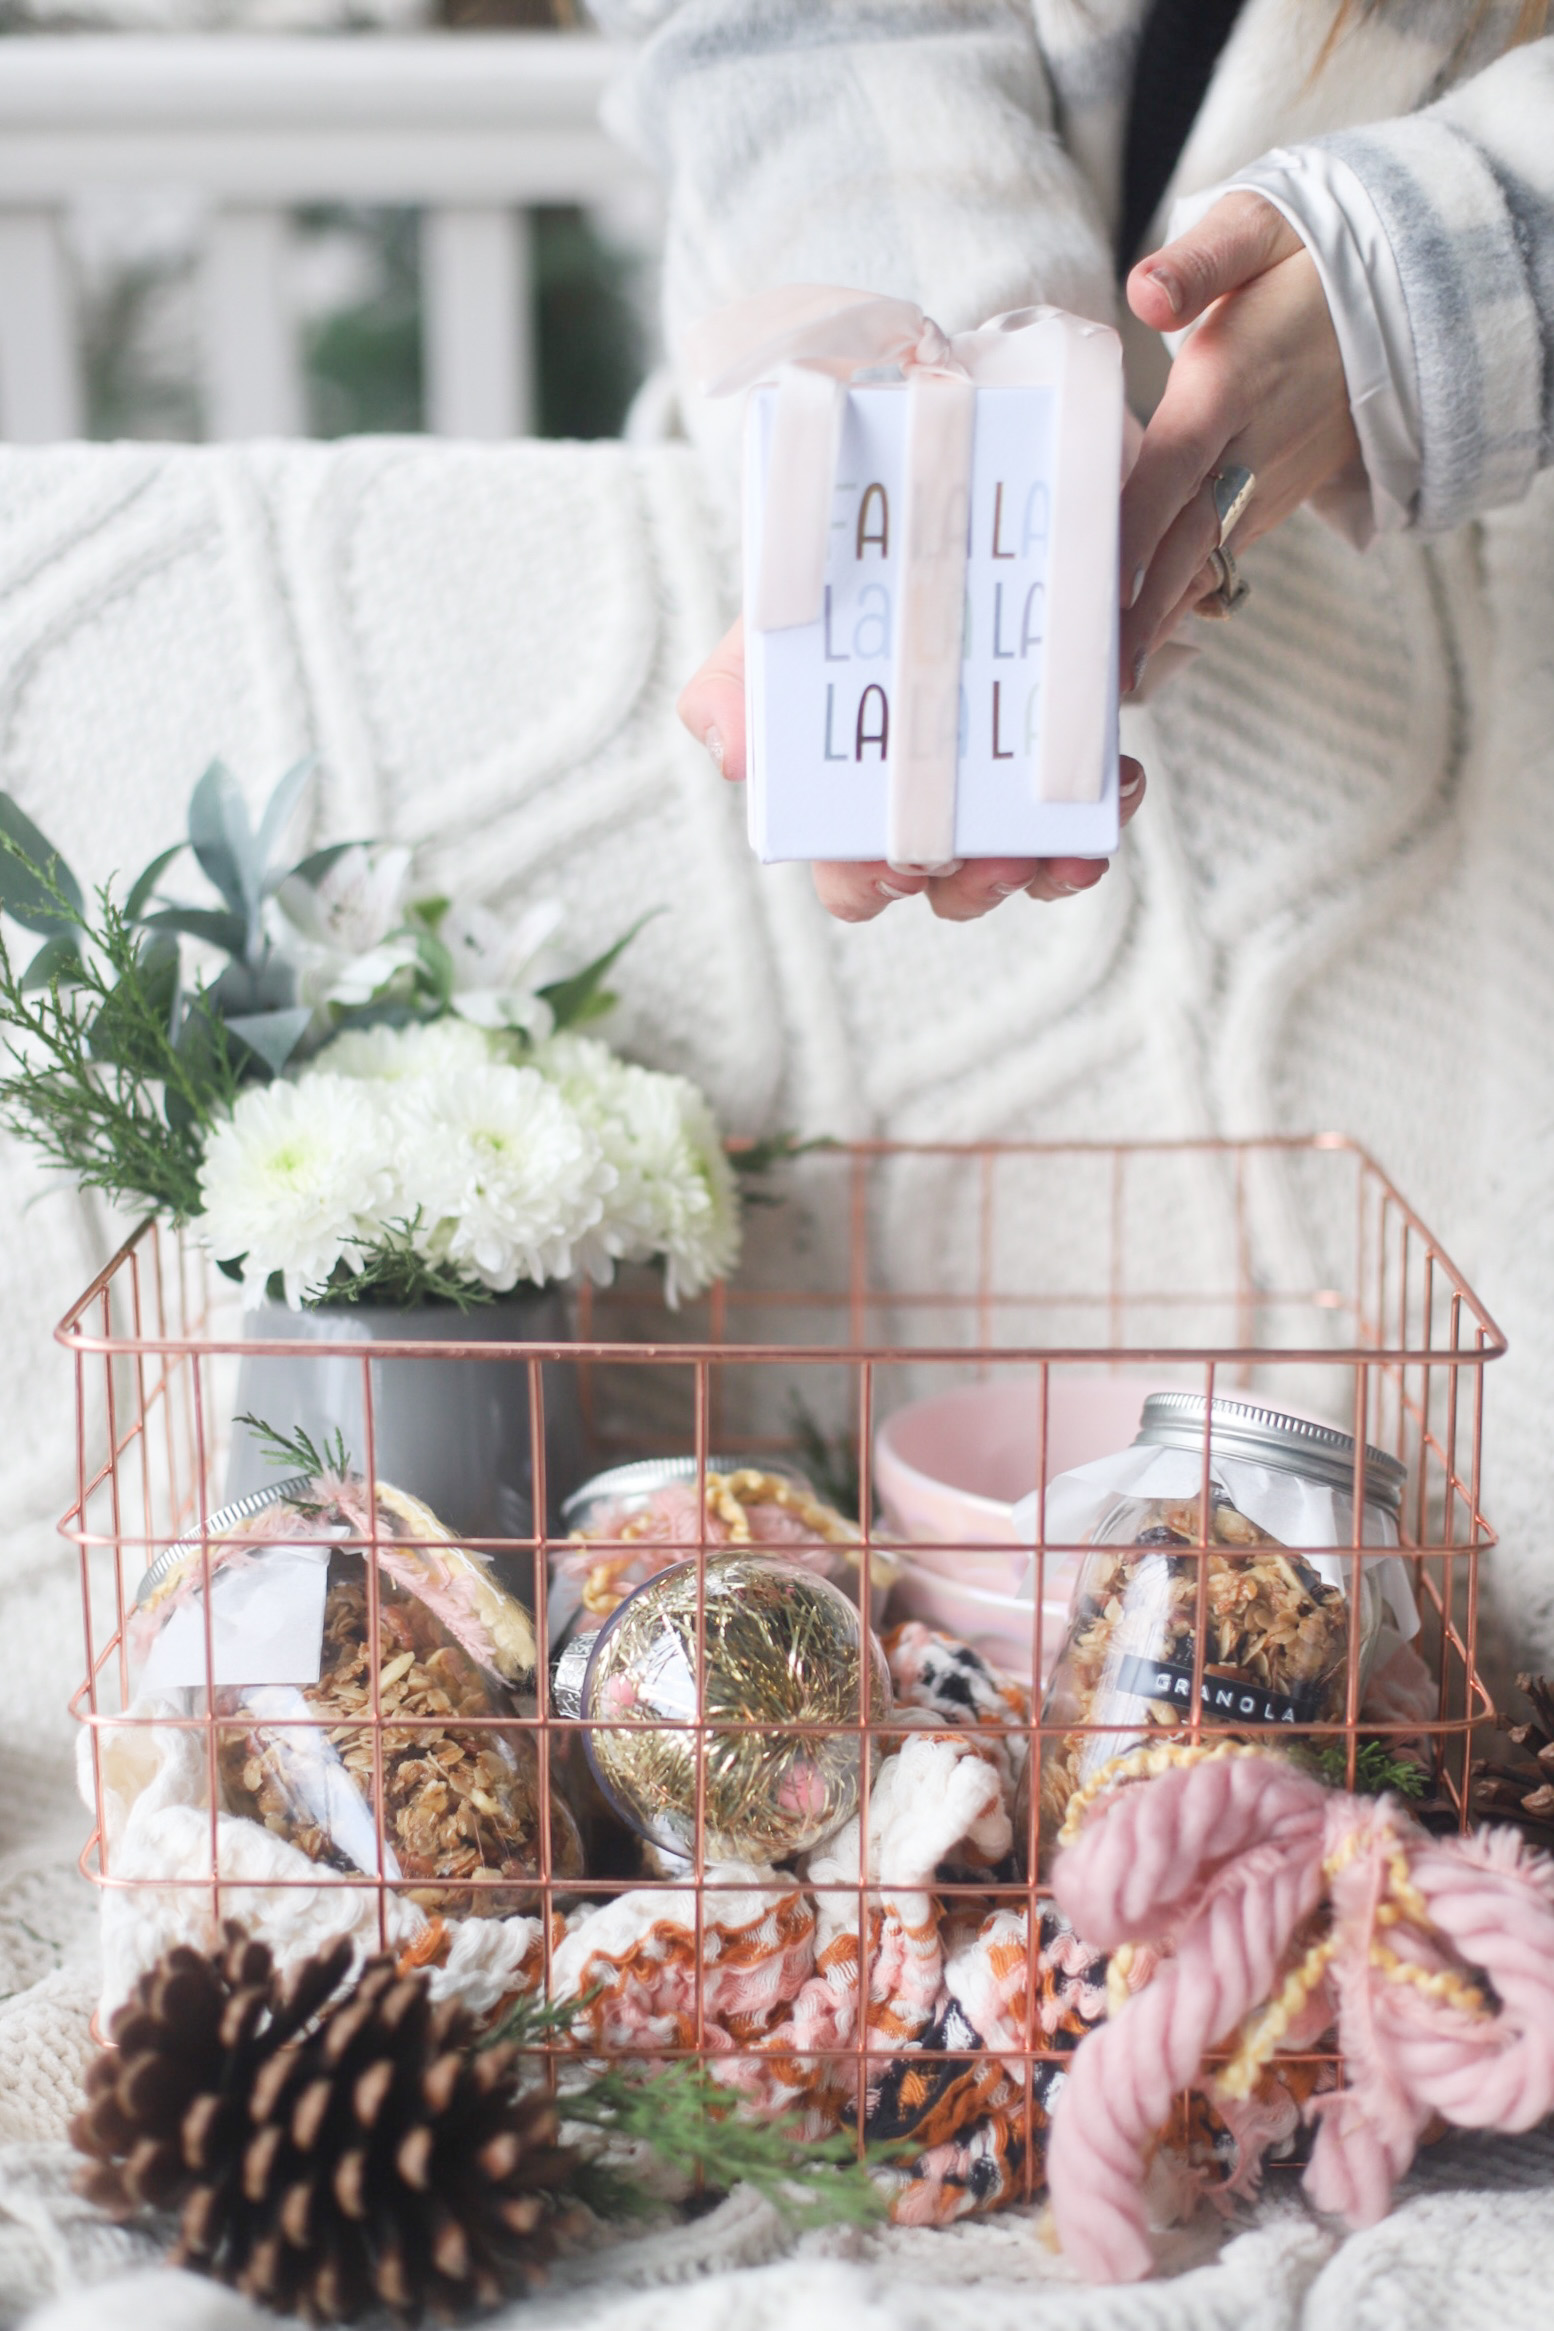 3 Favorite Handmade Gifts to Give This Holiday Season, including homemade granola in jars, Christmas candles from the grocery store, and a DIY floral arrangement using store-bought flowers. | @glitterinclexi | GLITTERINC.COM